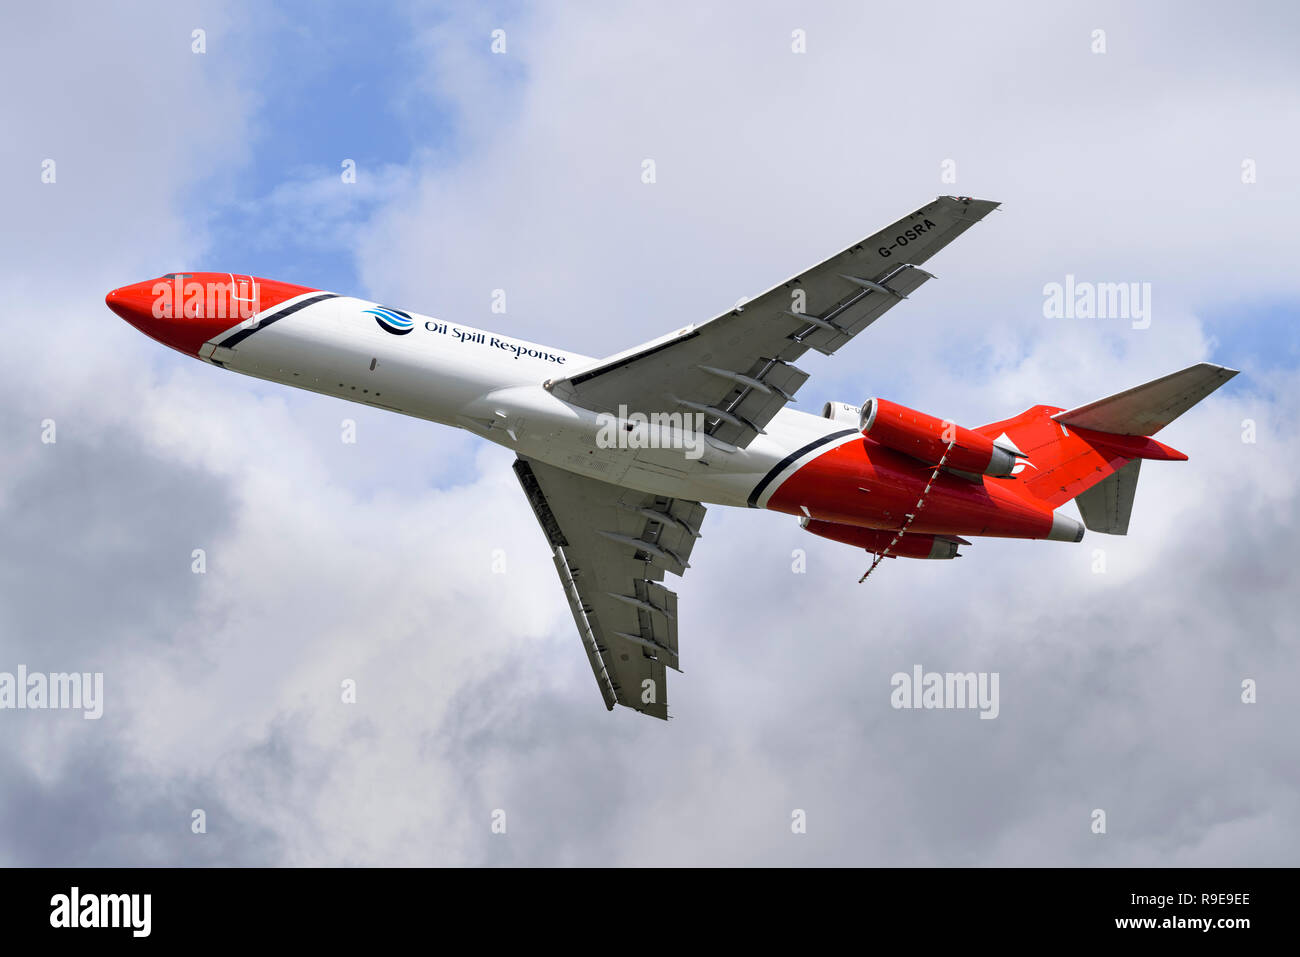 Boeing 727-2S2F (RE) Oil Spill Response aircraft reveals the high-lift devices in its wings as well as the spray boom mounted beneath the engines. - Stock Image